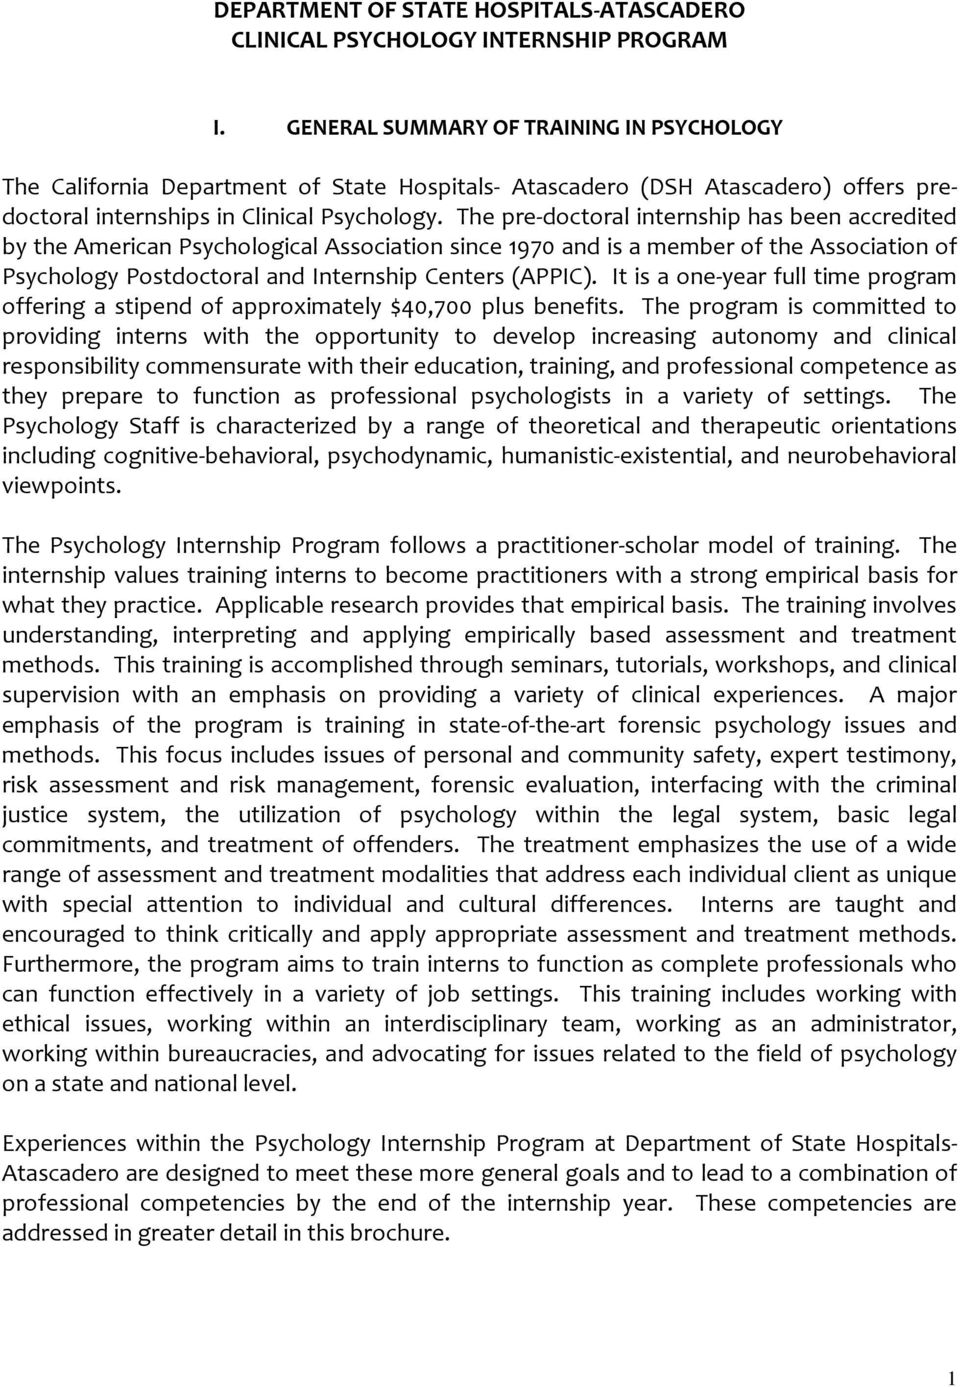 The pre-doctoral internship has been accredited by the American Psychological Association since 1970 and is a member of the Association of Psychology Postdoctoral and Internship Centers (APPIC).